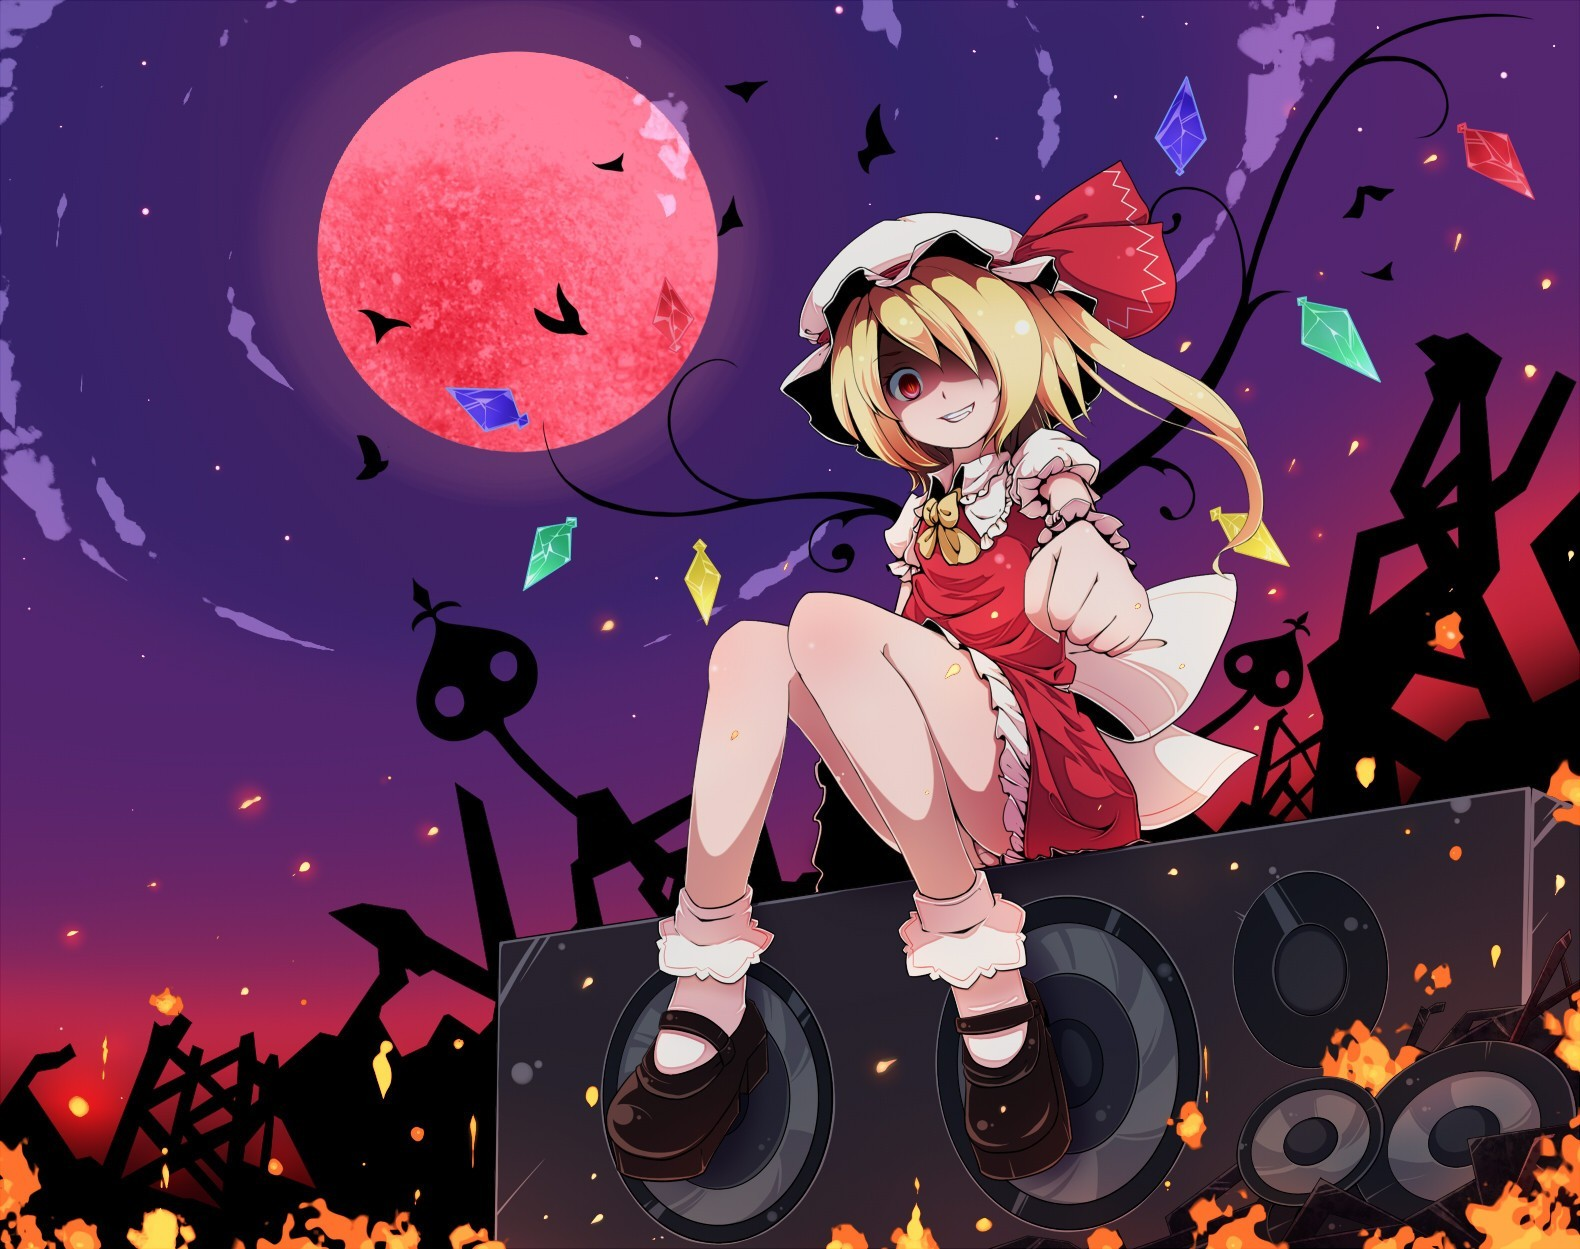 blondes touhou wings moon HD Wallpaper